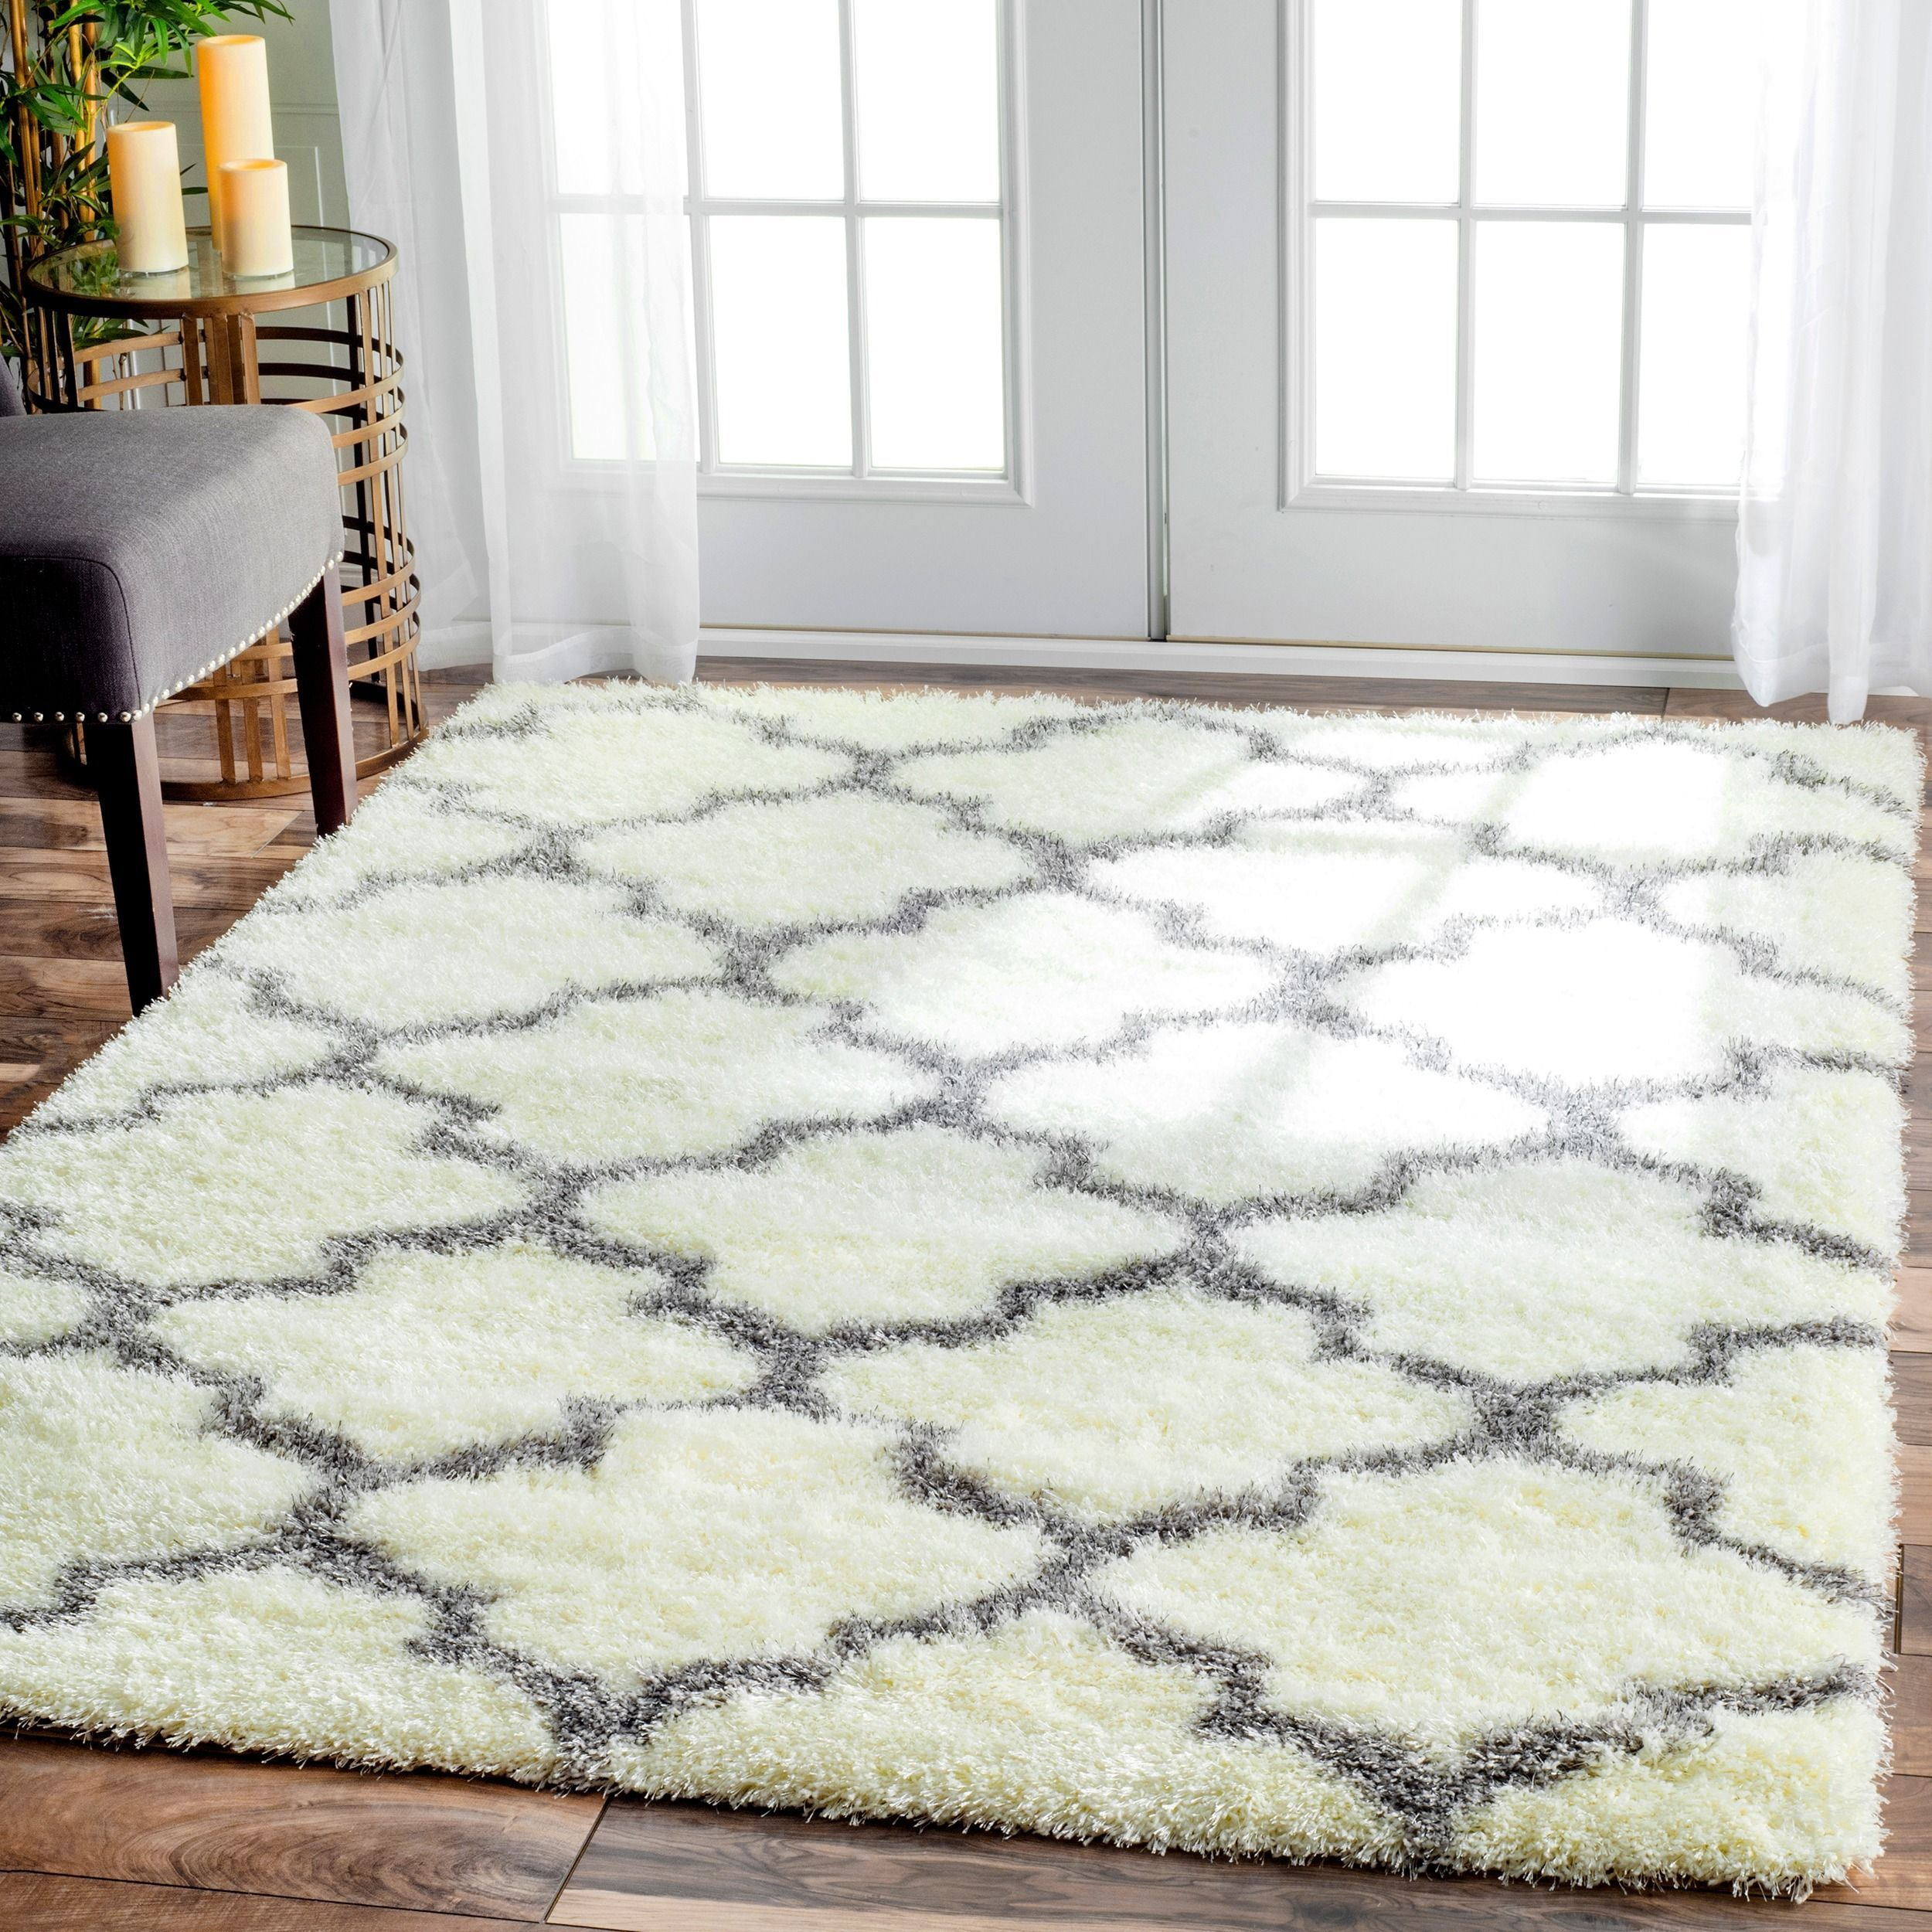 Soft and plush, this cozy Moroccan trellis rug adds warmth and ...